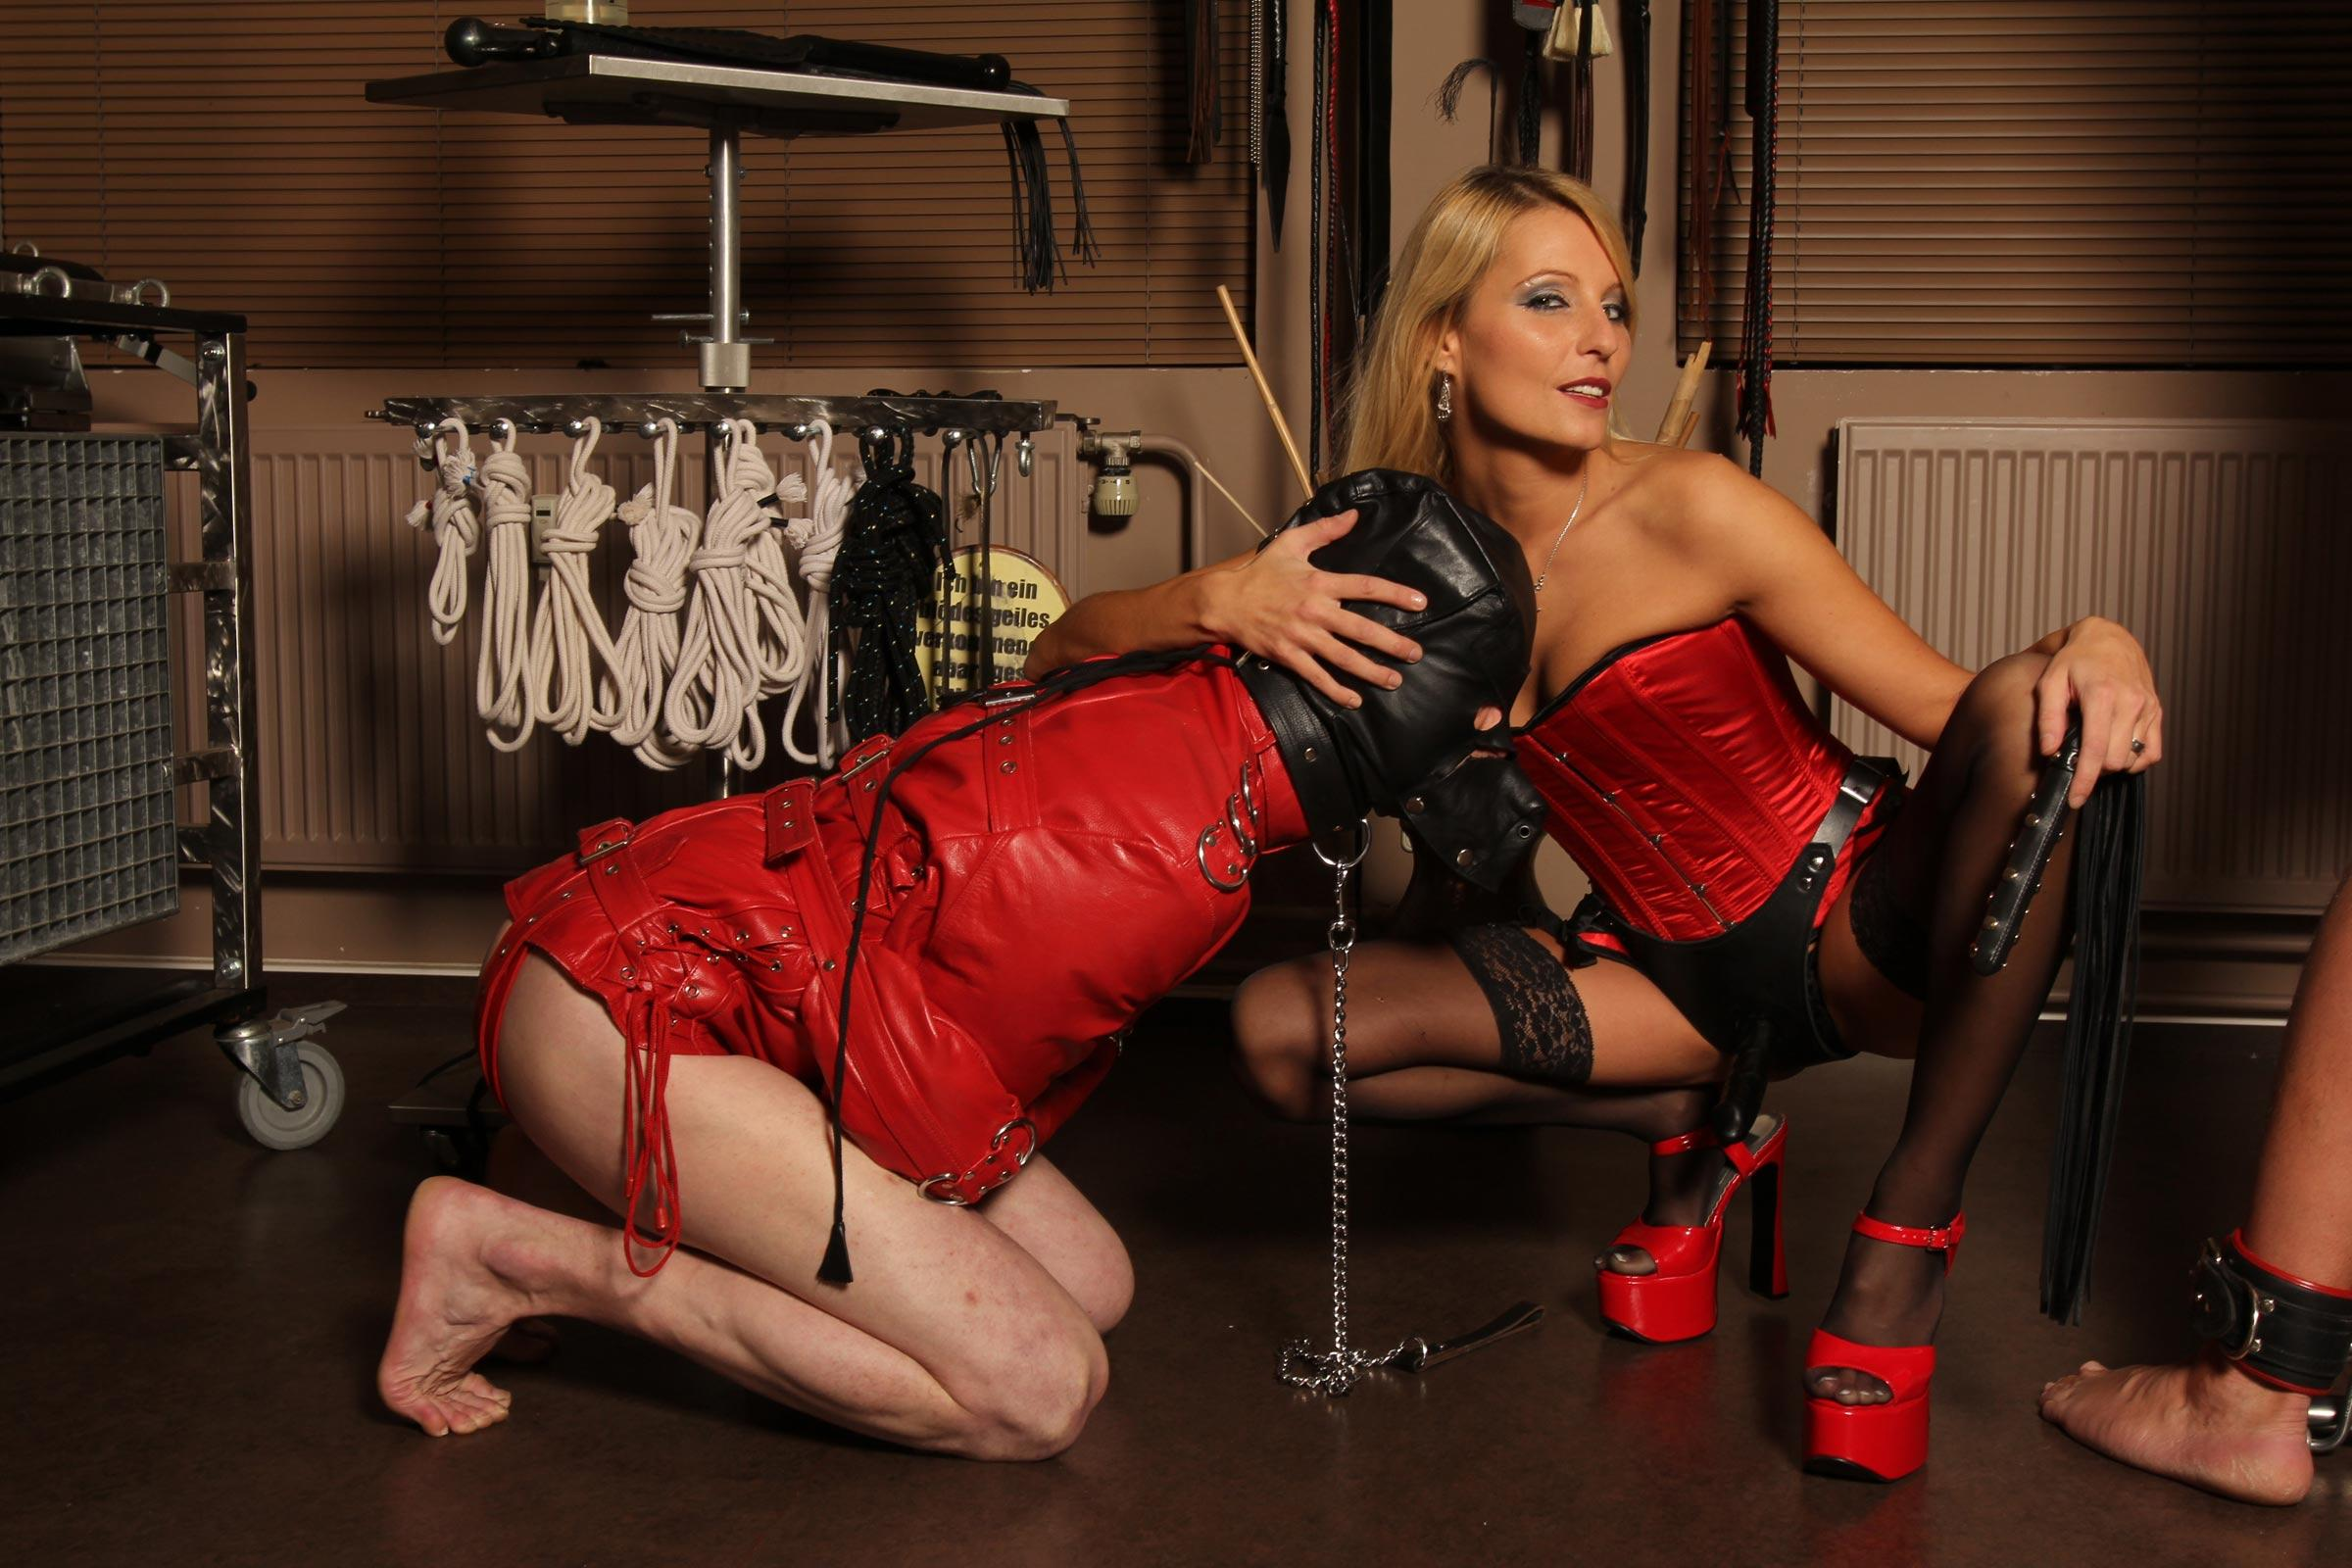 Femdom bondage videos. Centurion add photo